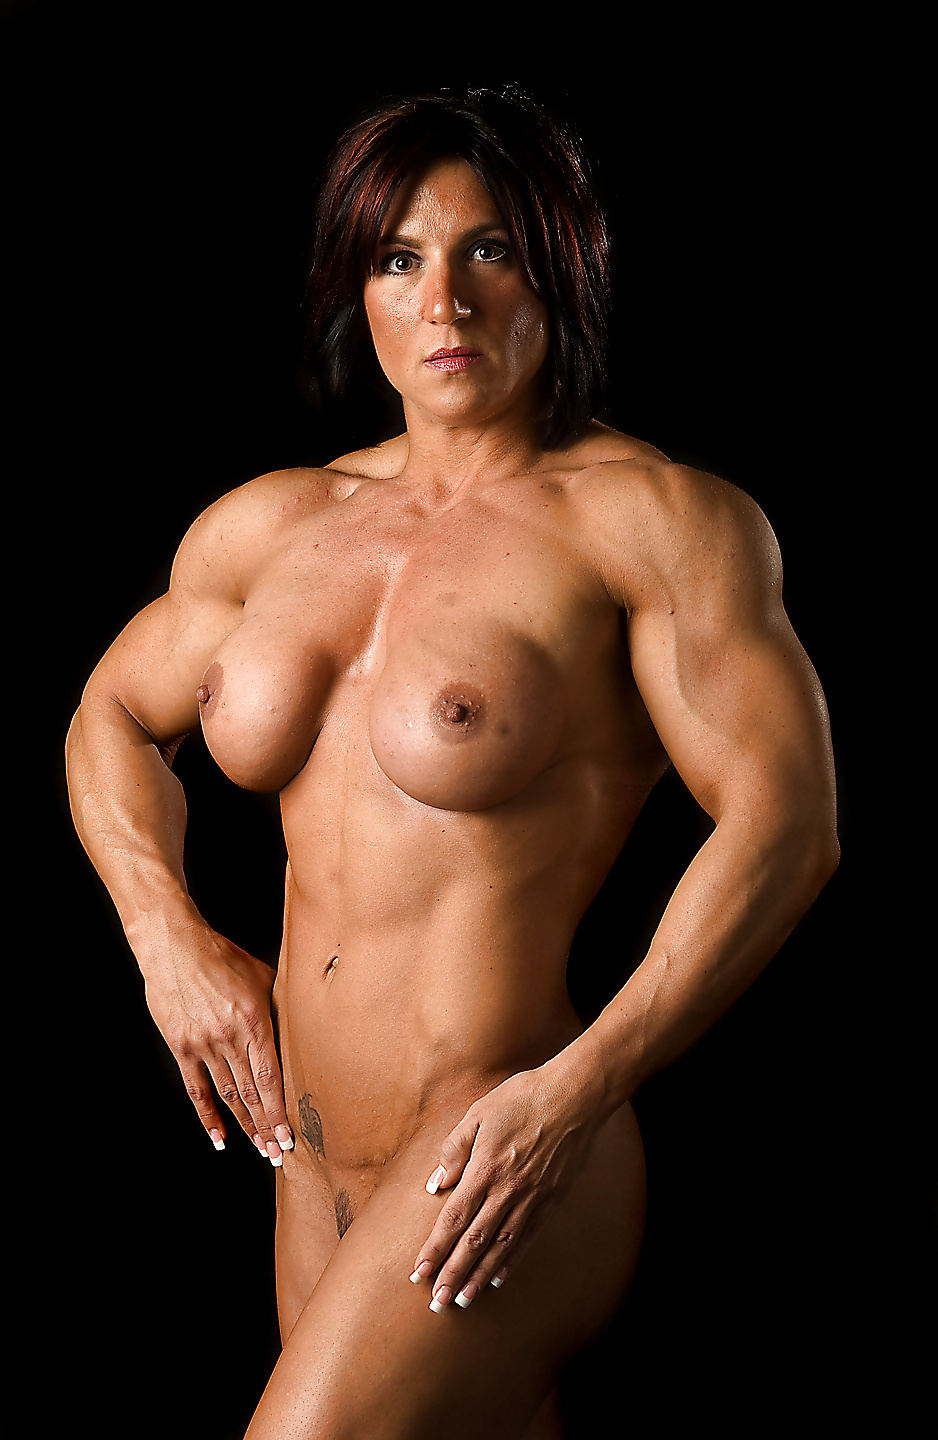 Tracey toth muscle milf